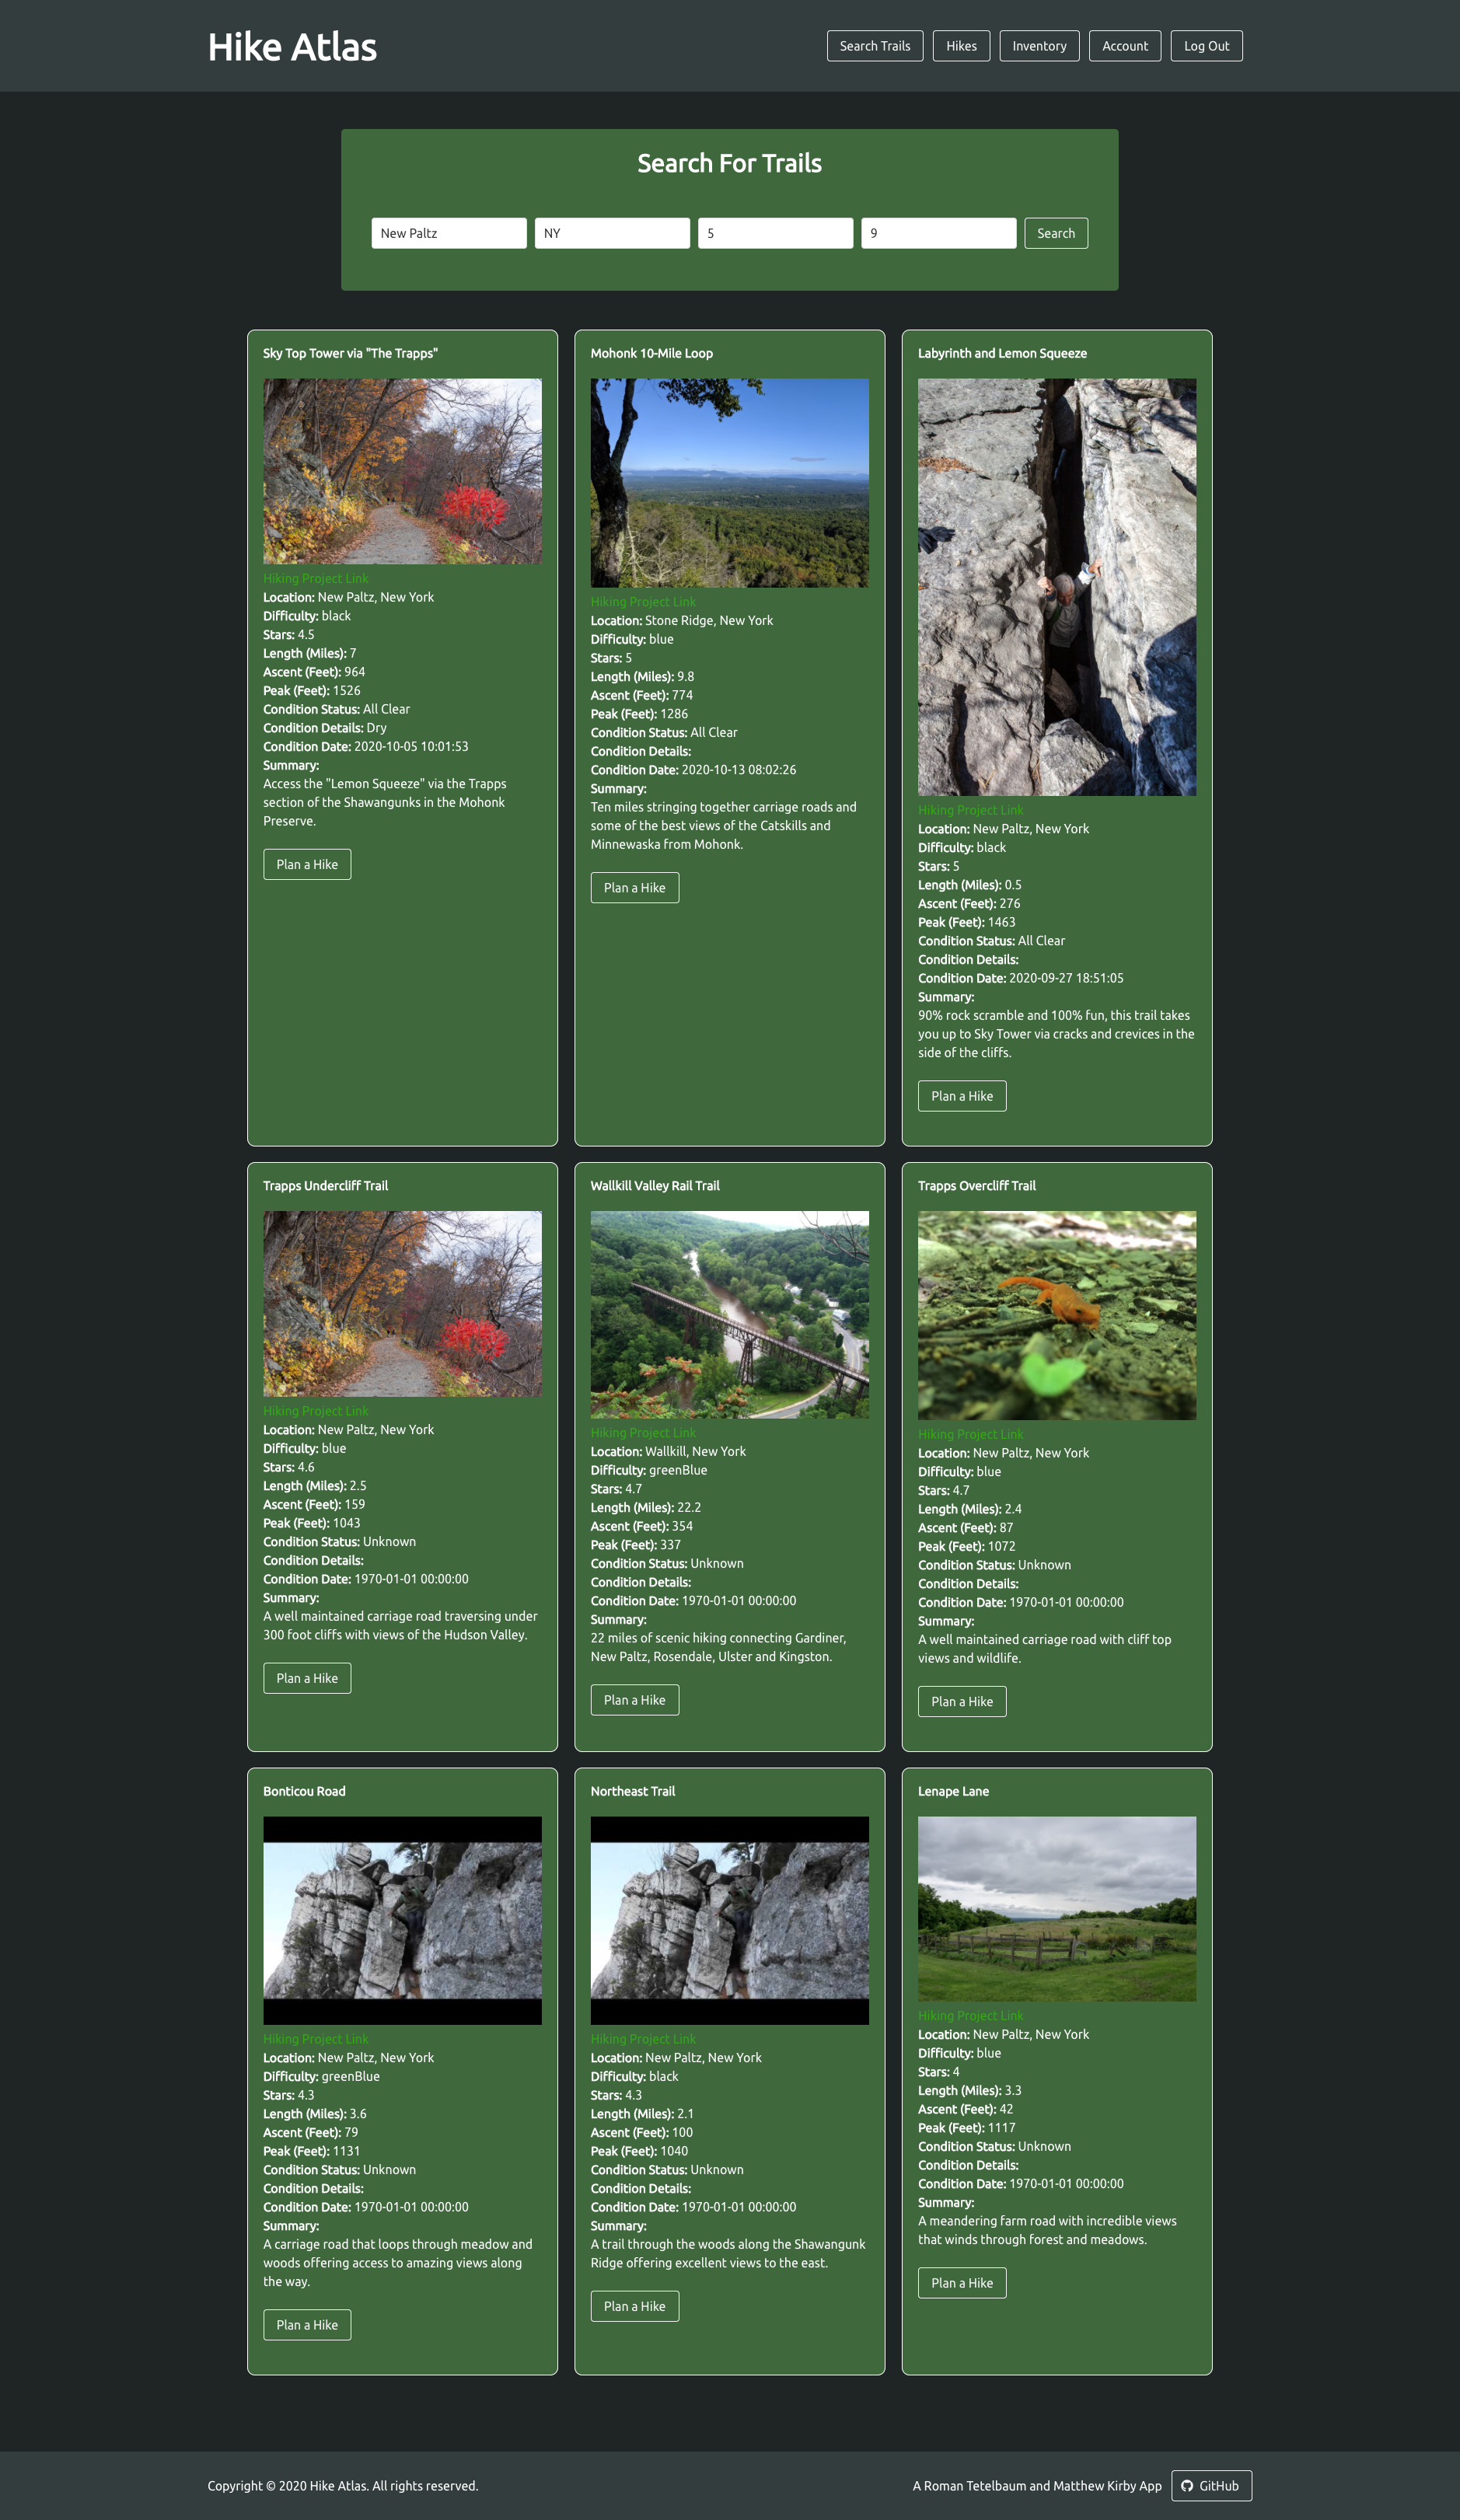 Hike Atlas Search Results